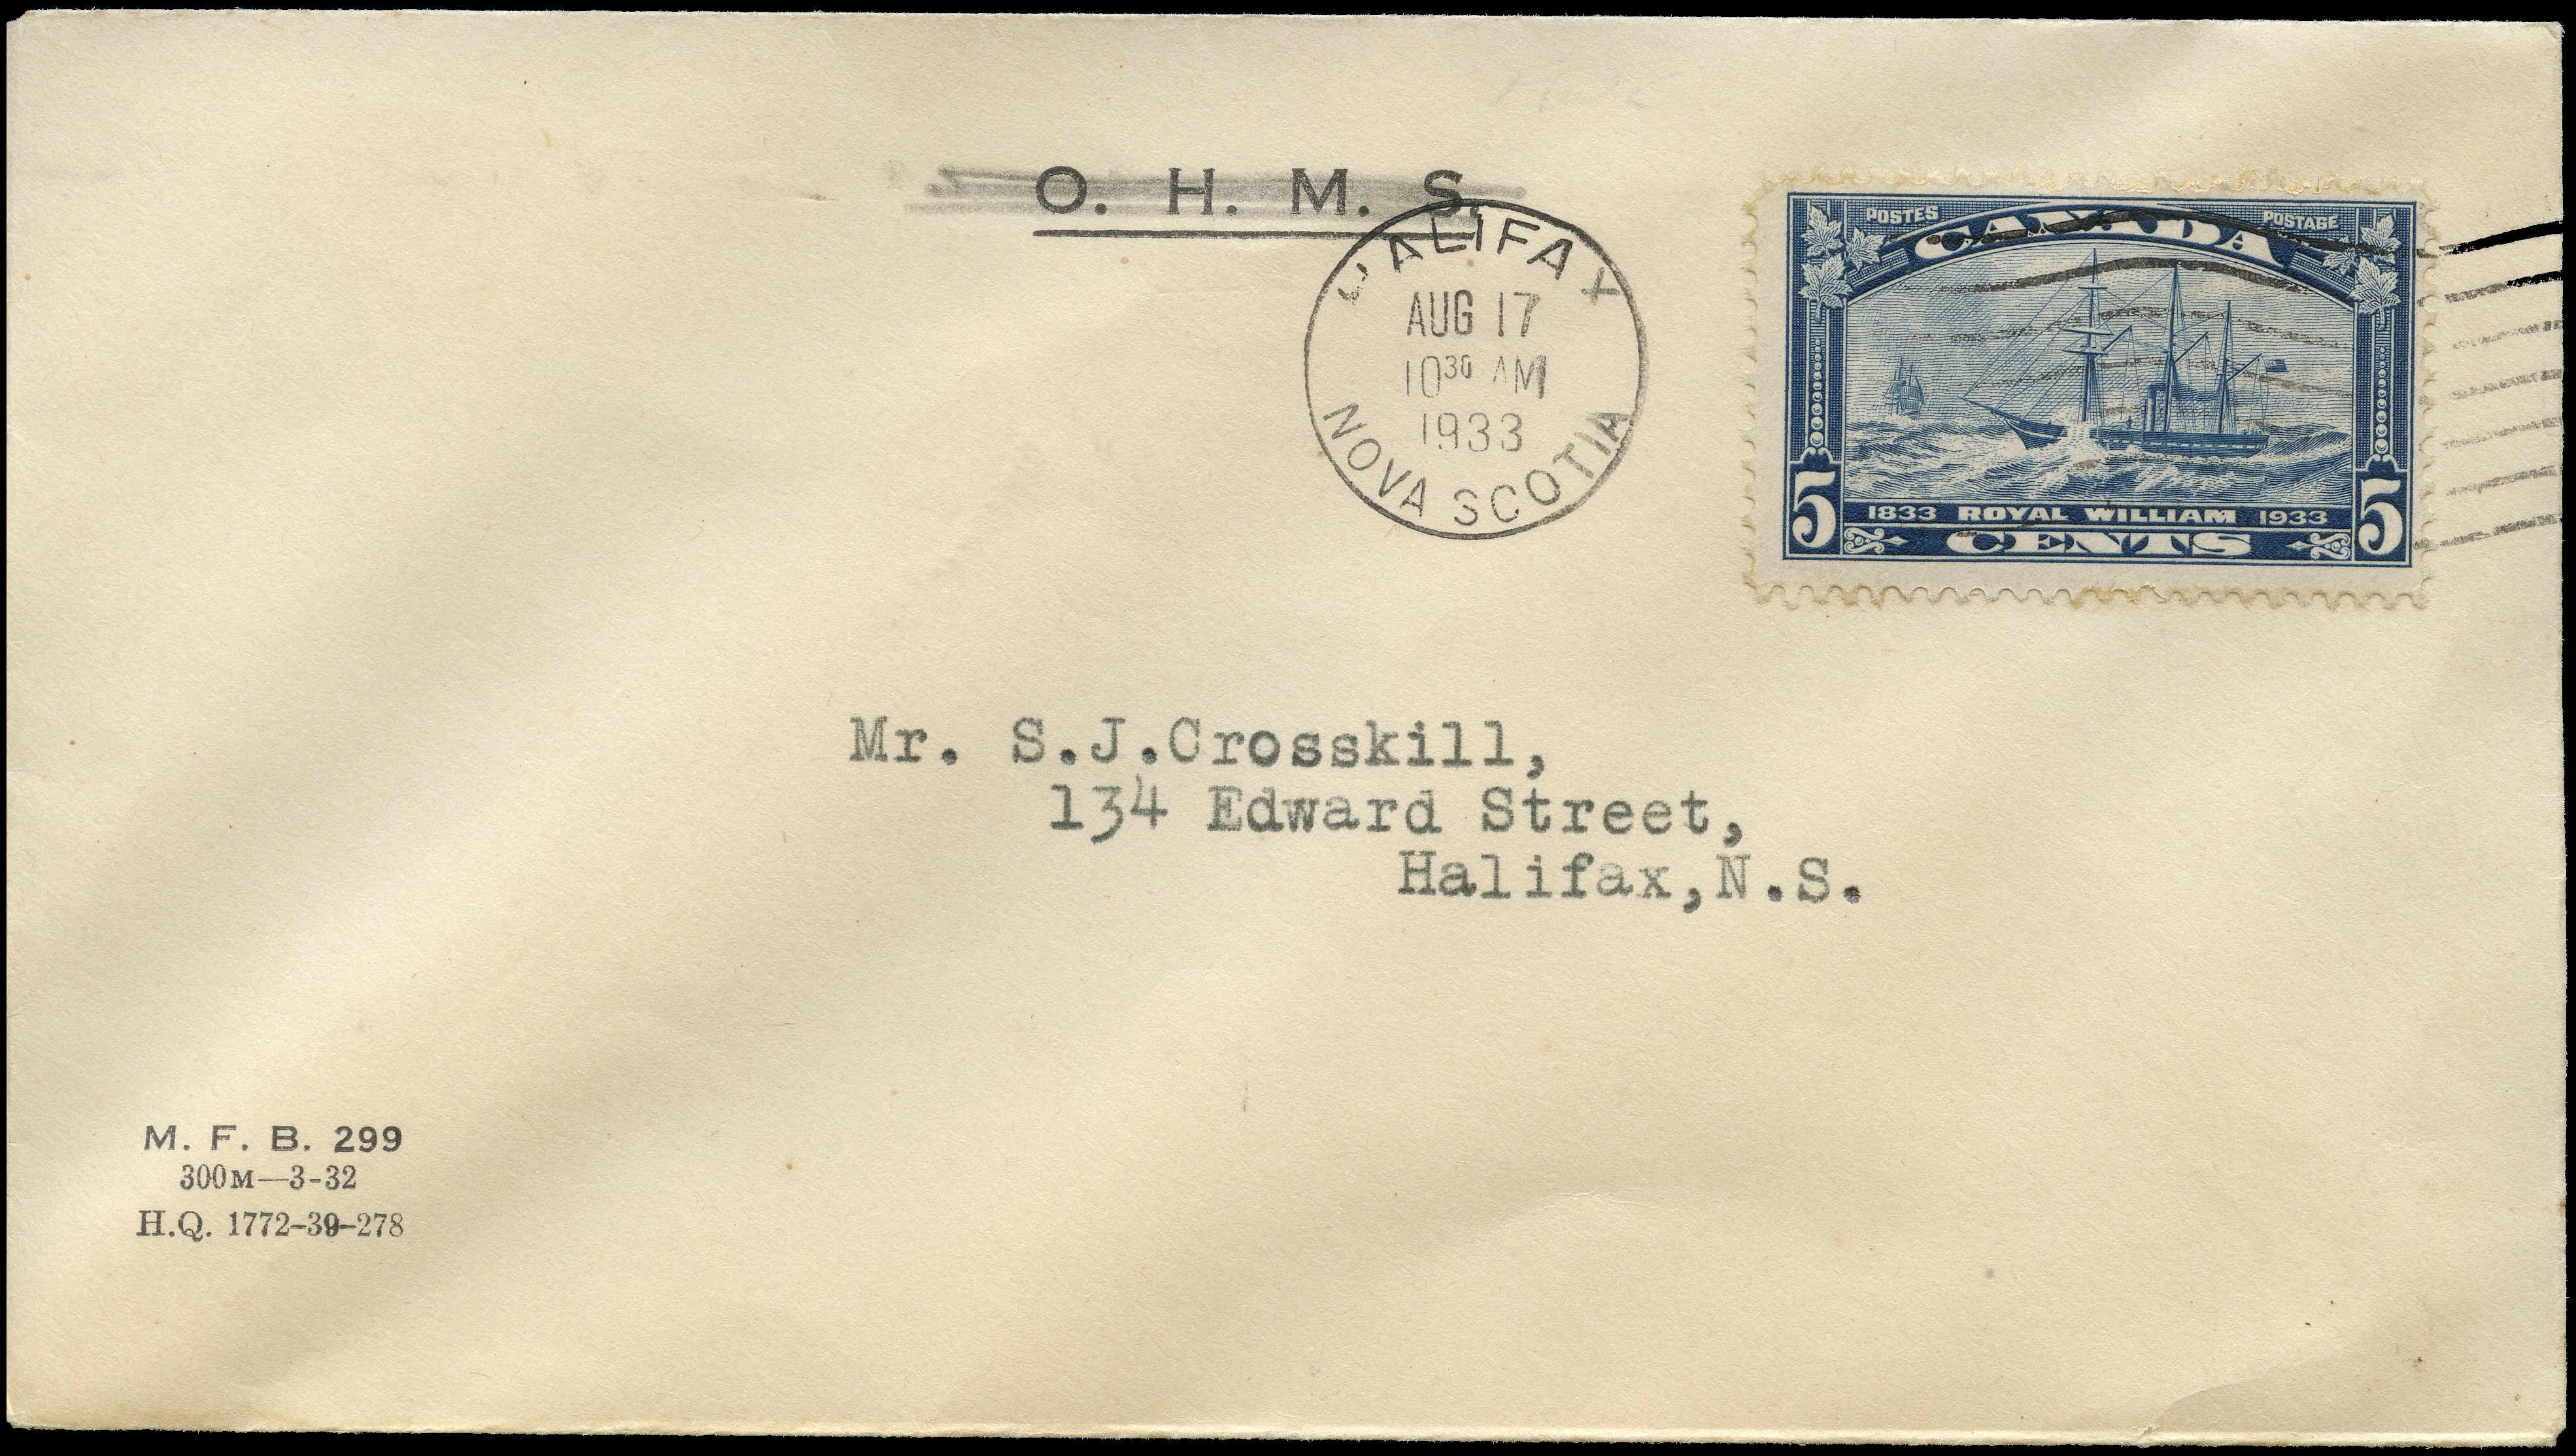 Canada - Scott #204 (1933) first day cover, postmarked Halifax, N.S. on OHMS envelope